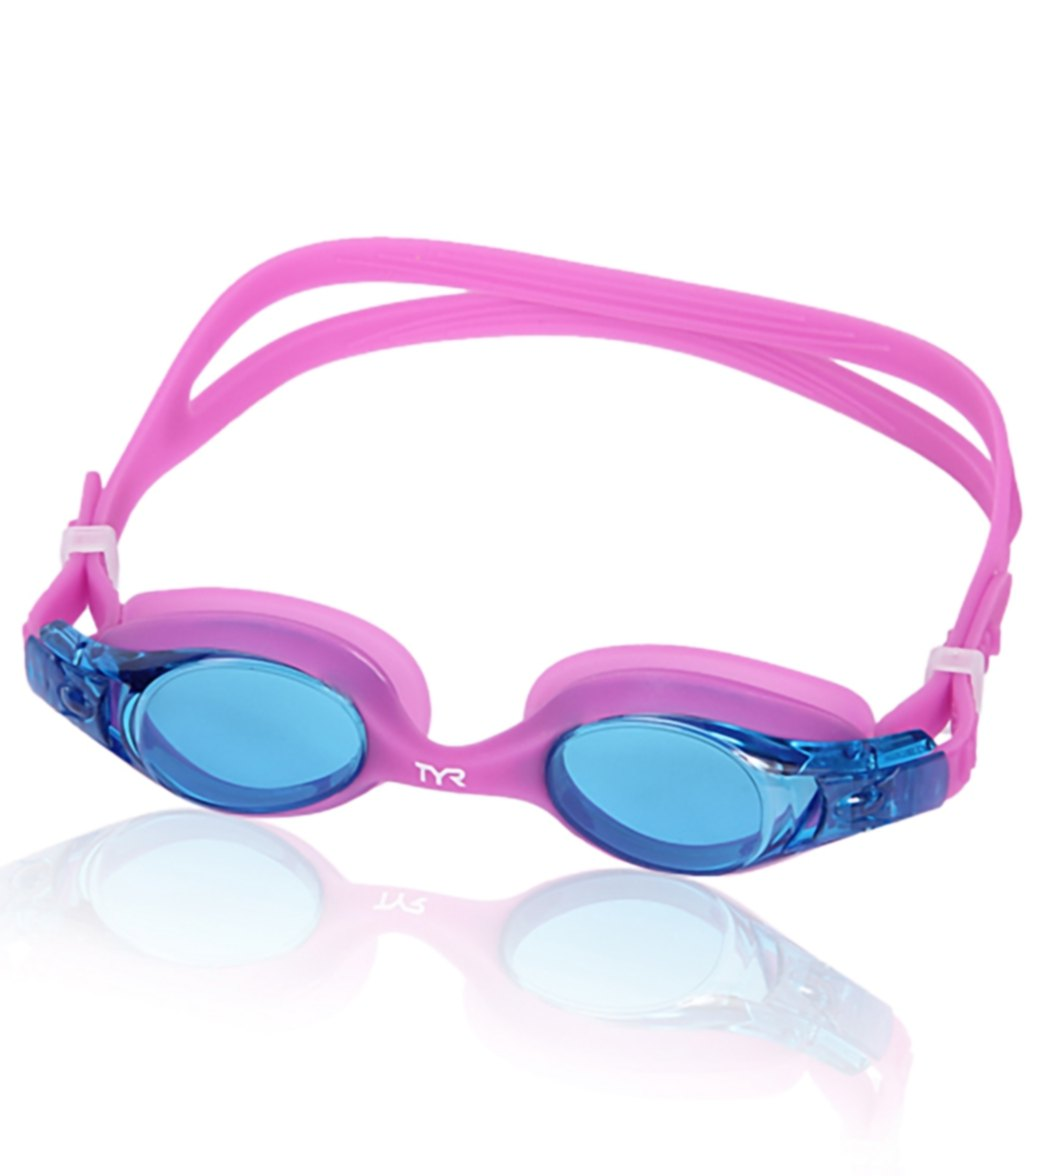 d8fd31ce38 TYR Swimple Goggle at SwimOutlet.com